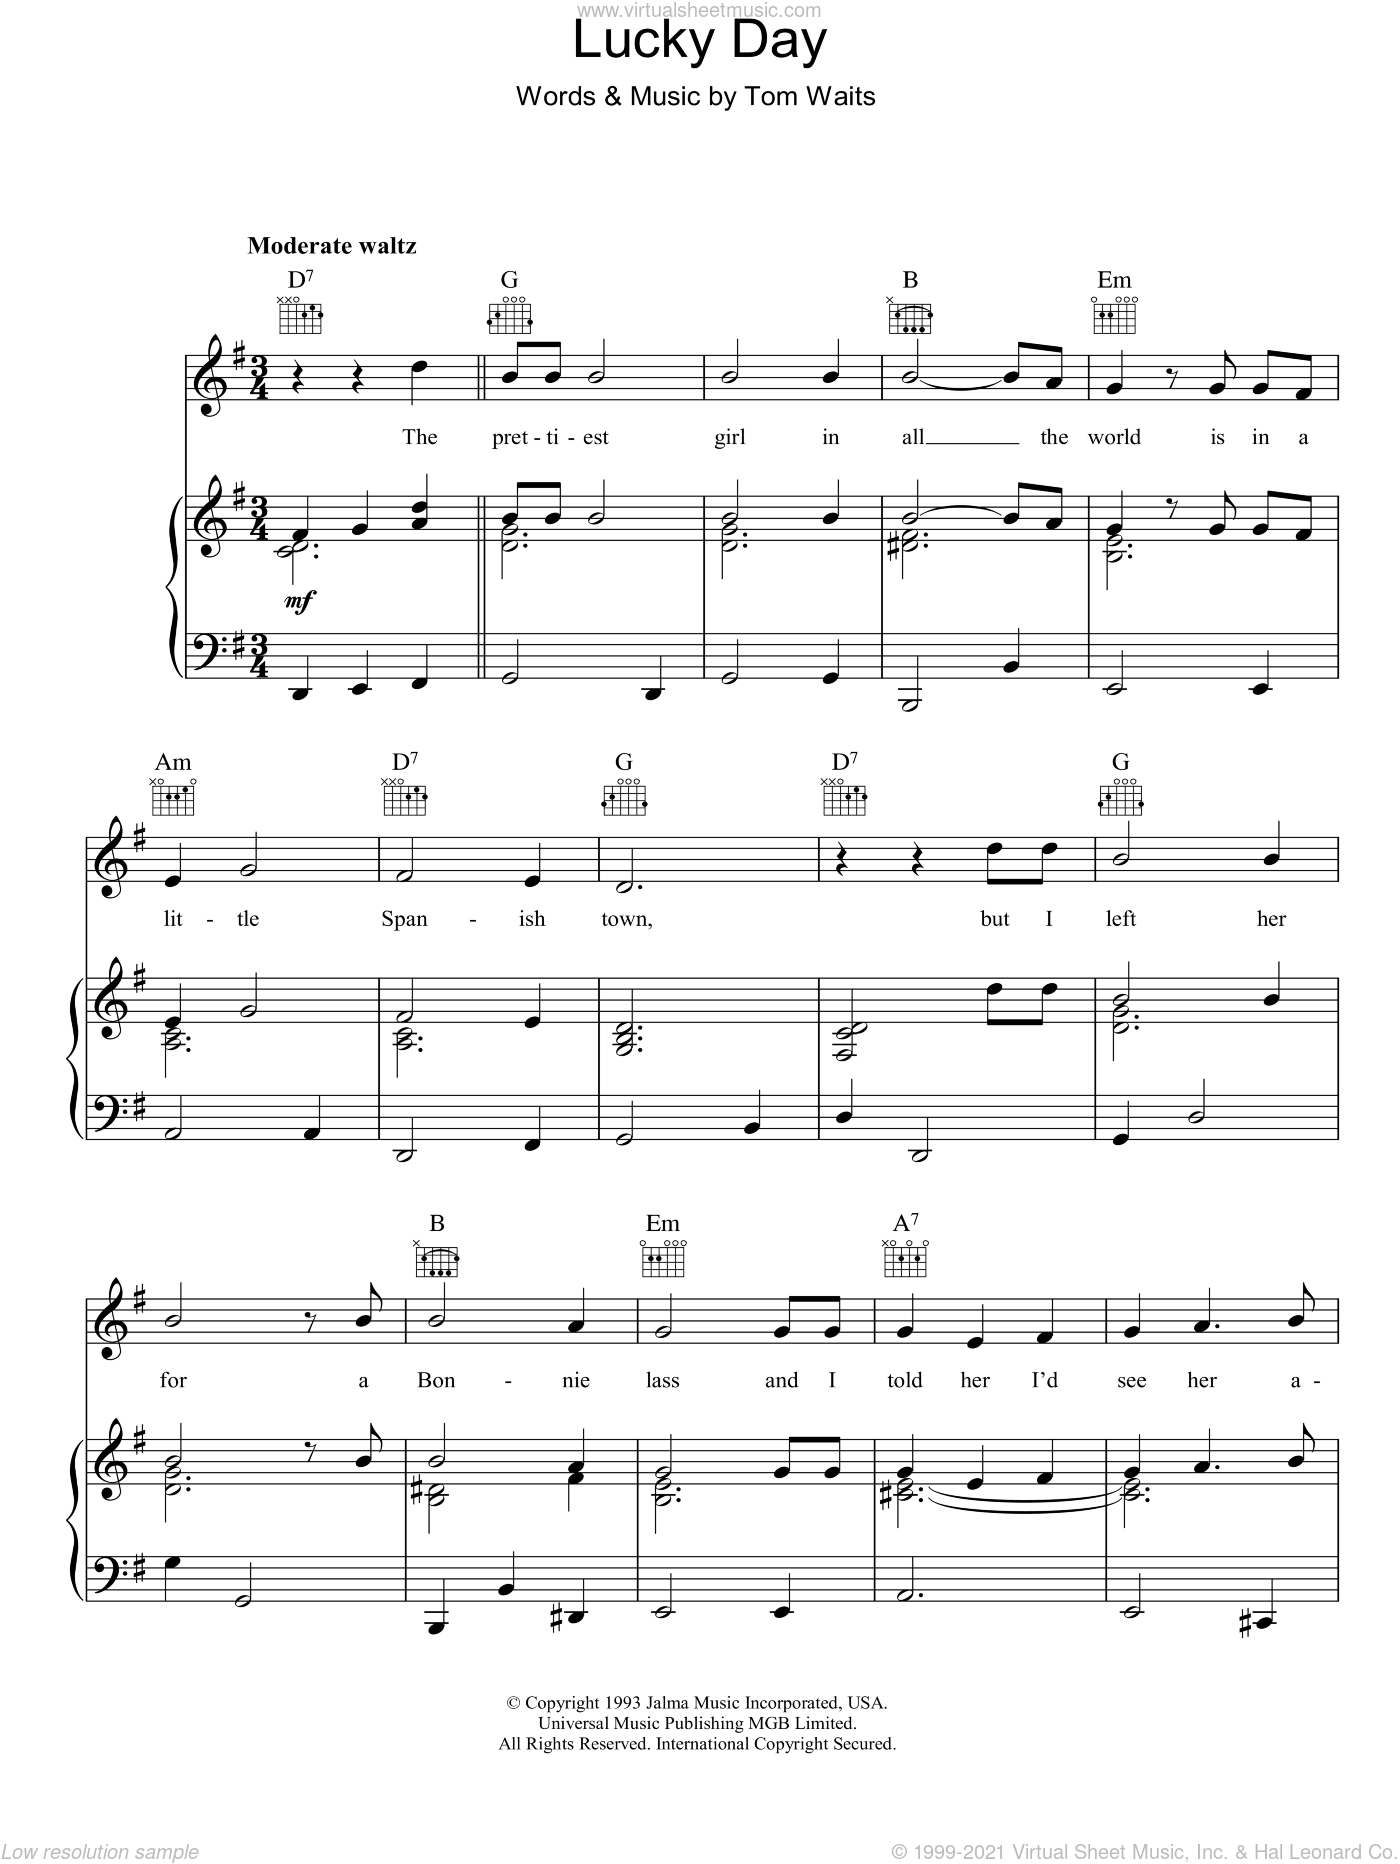 Lucky Day sheet music for voice, piano or guitar by Tom Waits, intermediate voice, piano or guitar. Score Image Preview.